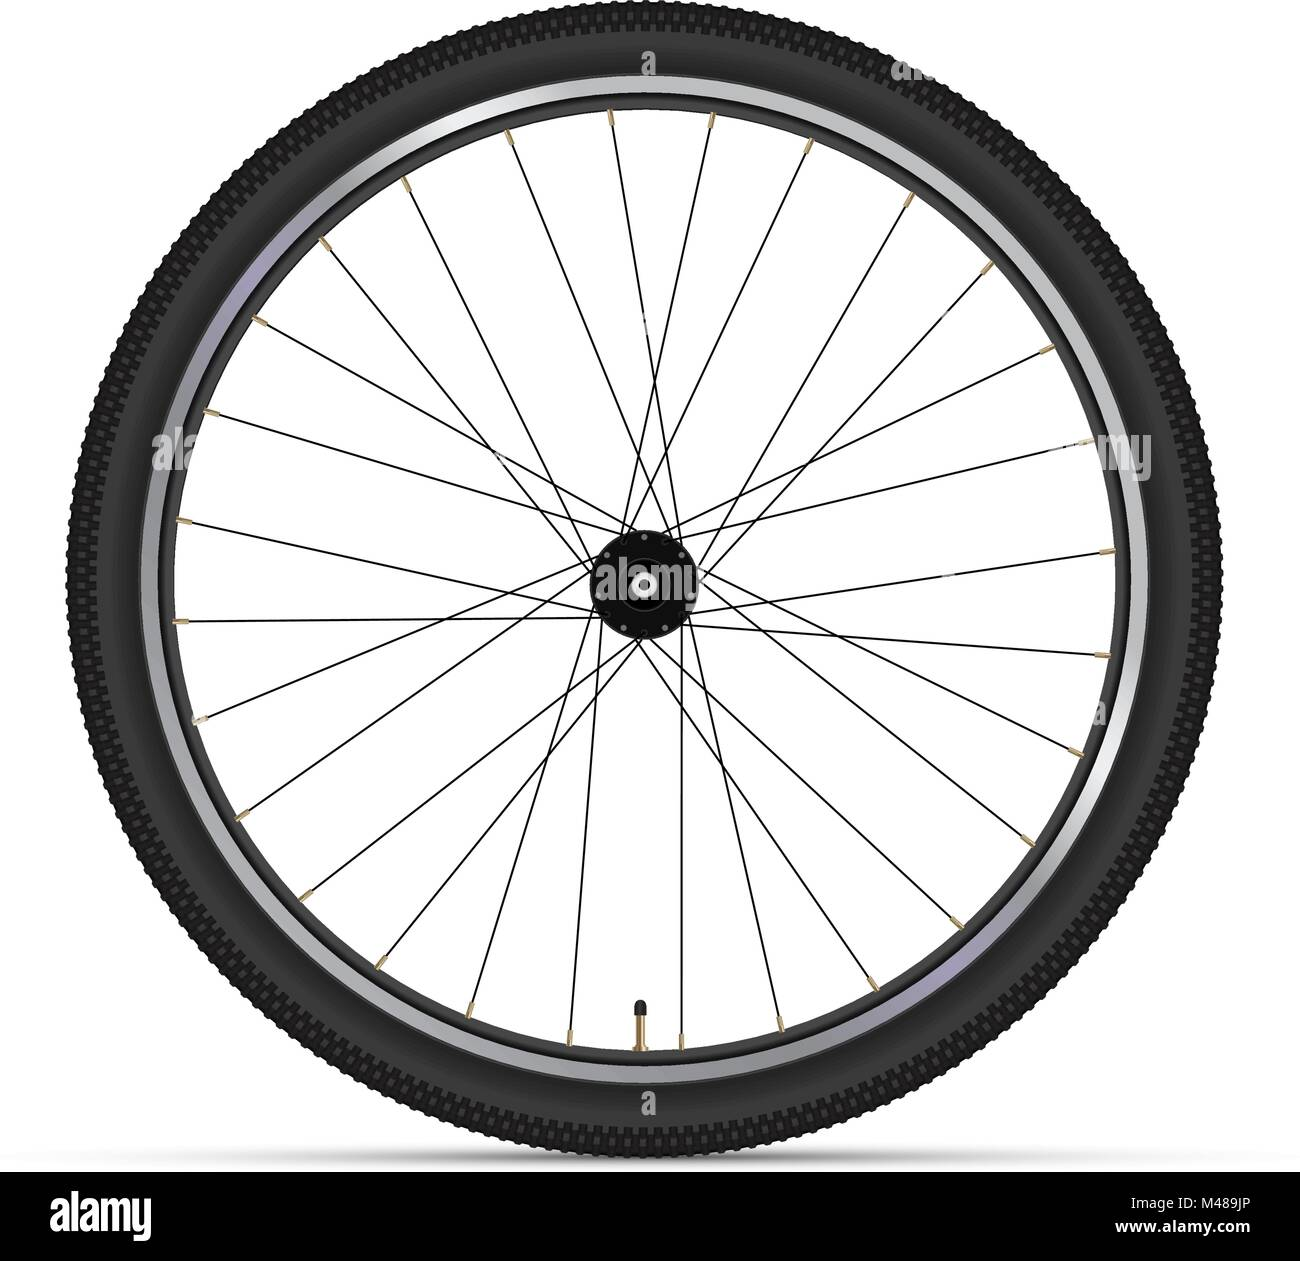 Mountain Bicycle Wheel with Polished Rims. 3D Realistic Vector Illustration - Stock Vector